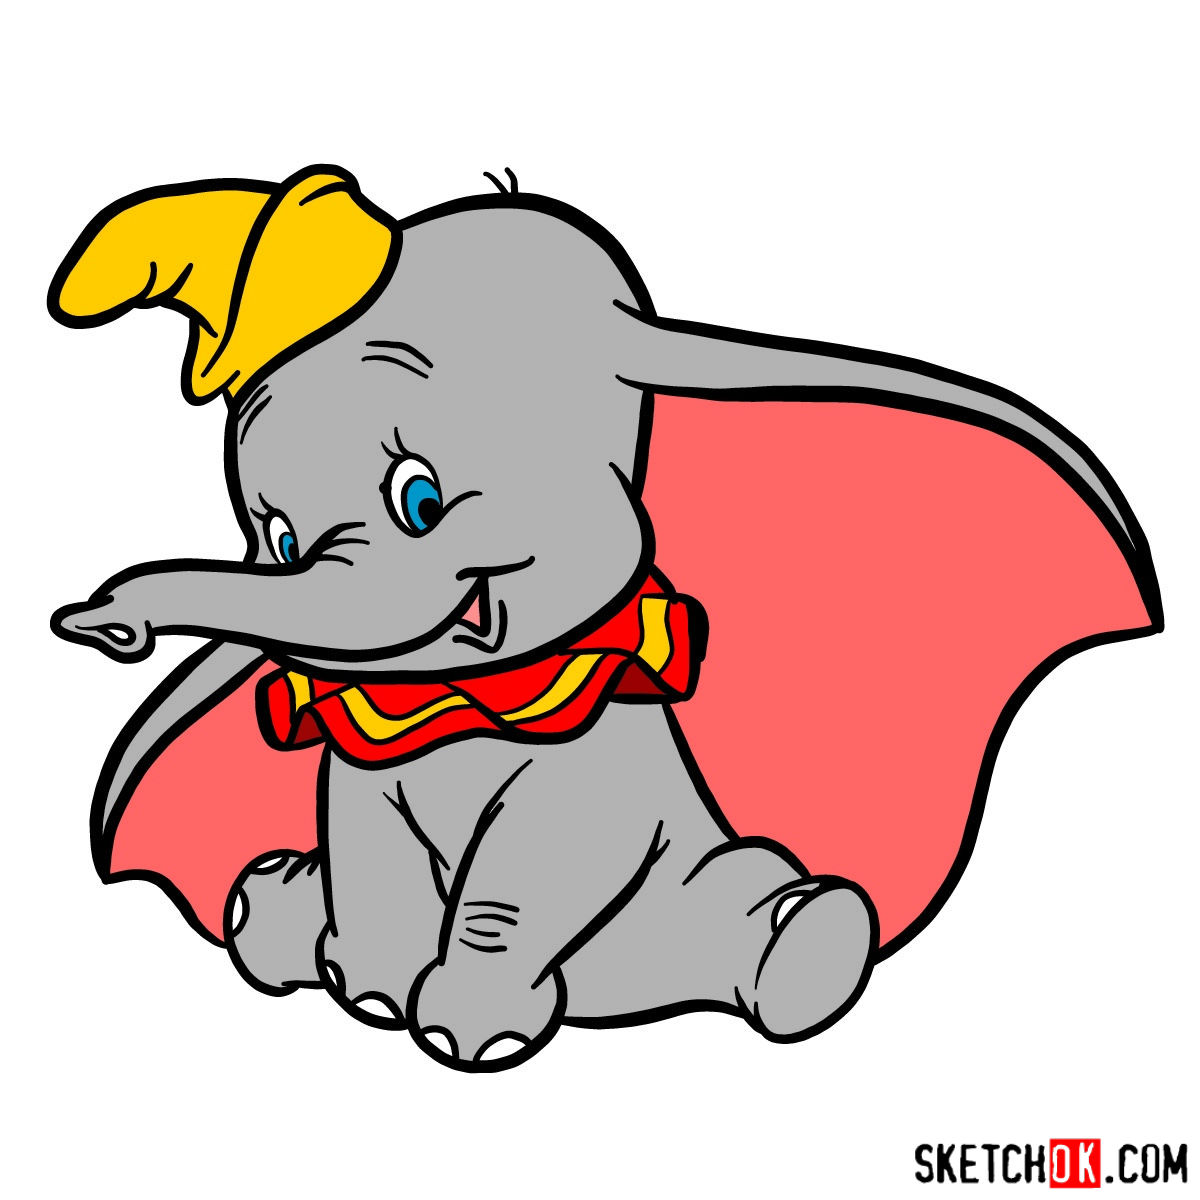 1200x1200 How To Draw Dumbo The Elephant